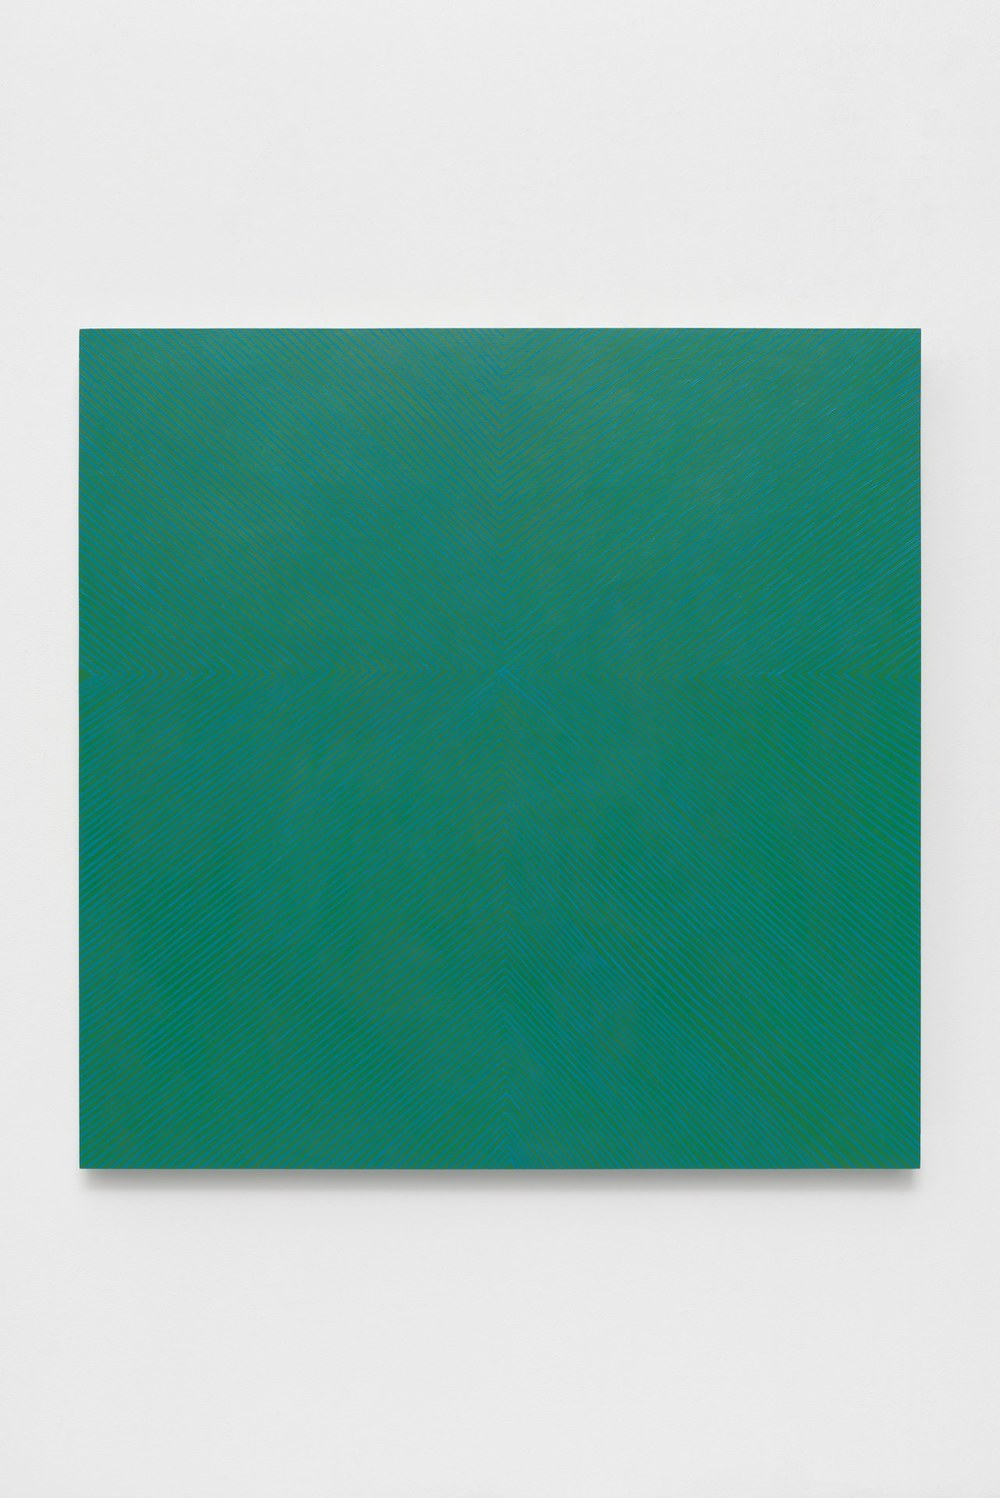 Jade Emerald, 2015, acrylic on panel, 48 x 48 x 2 inches